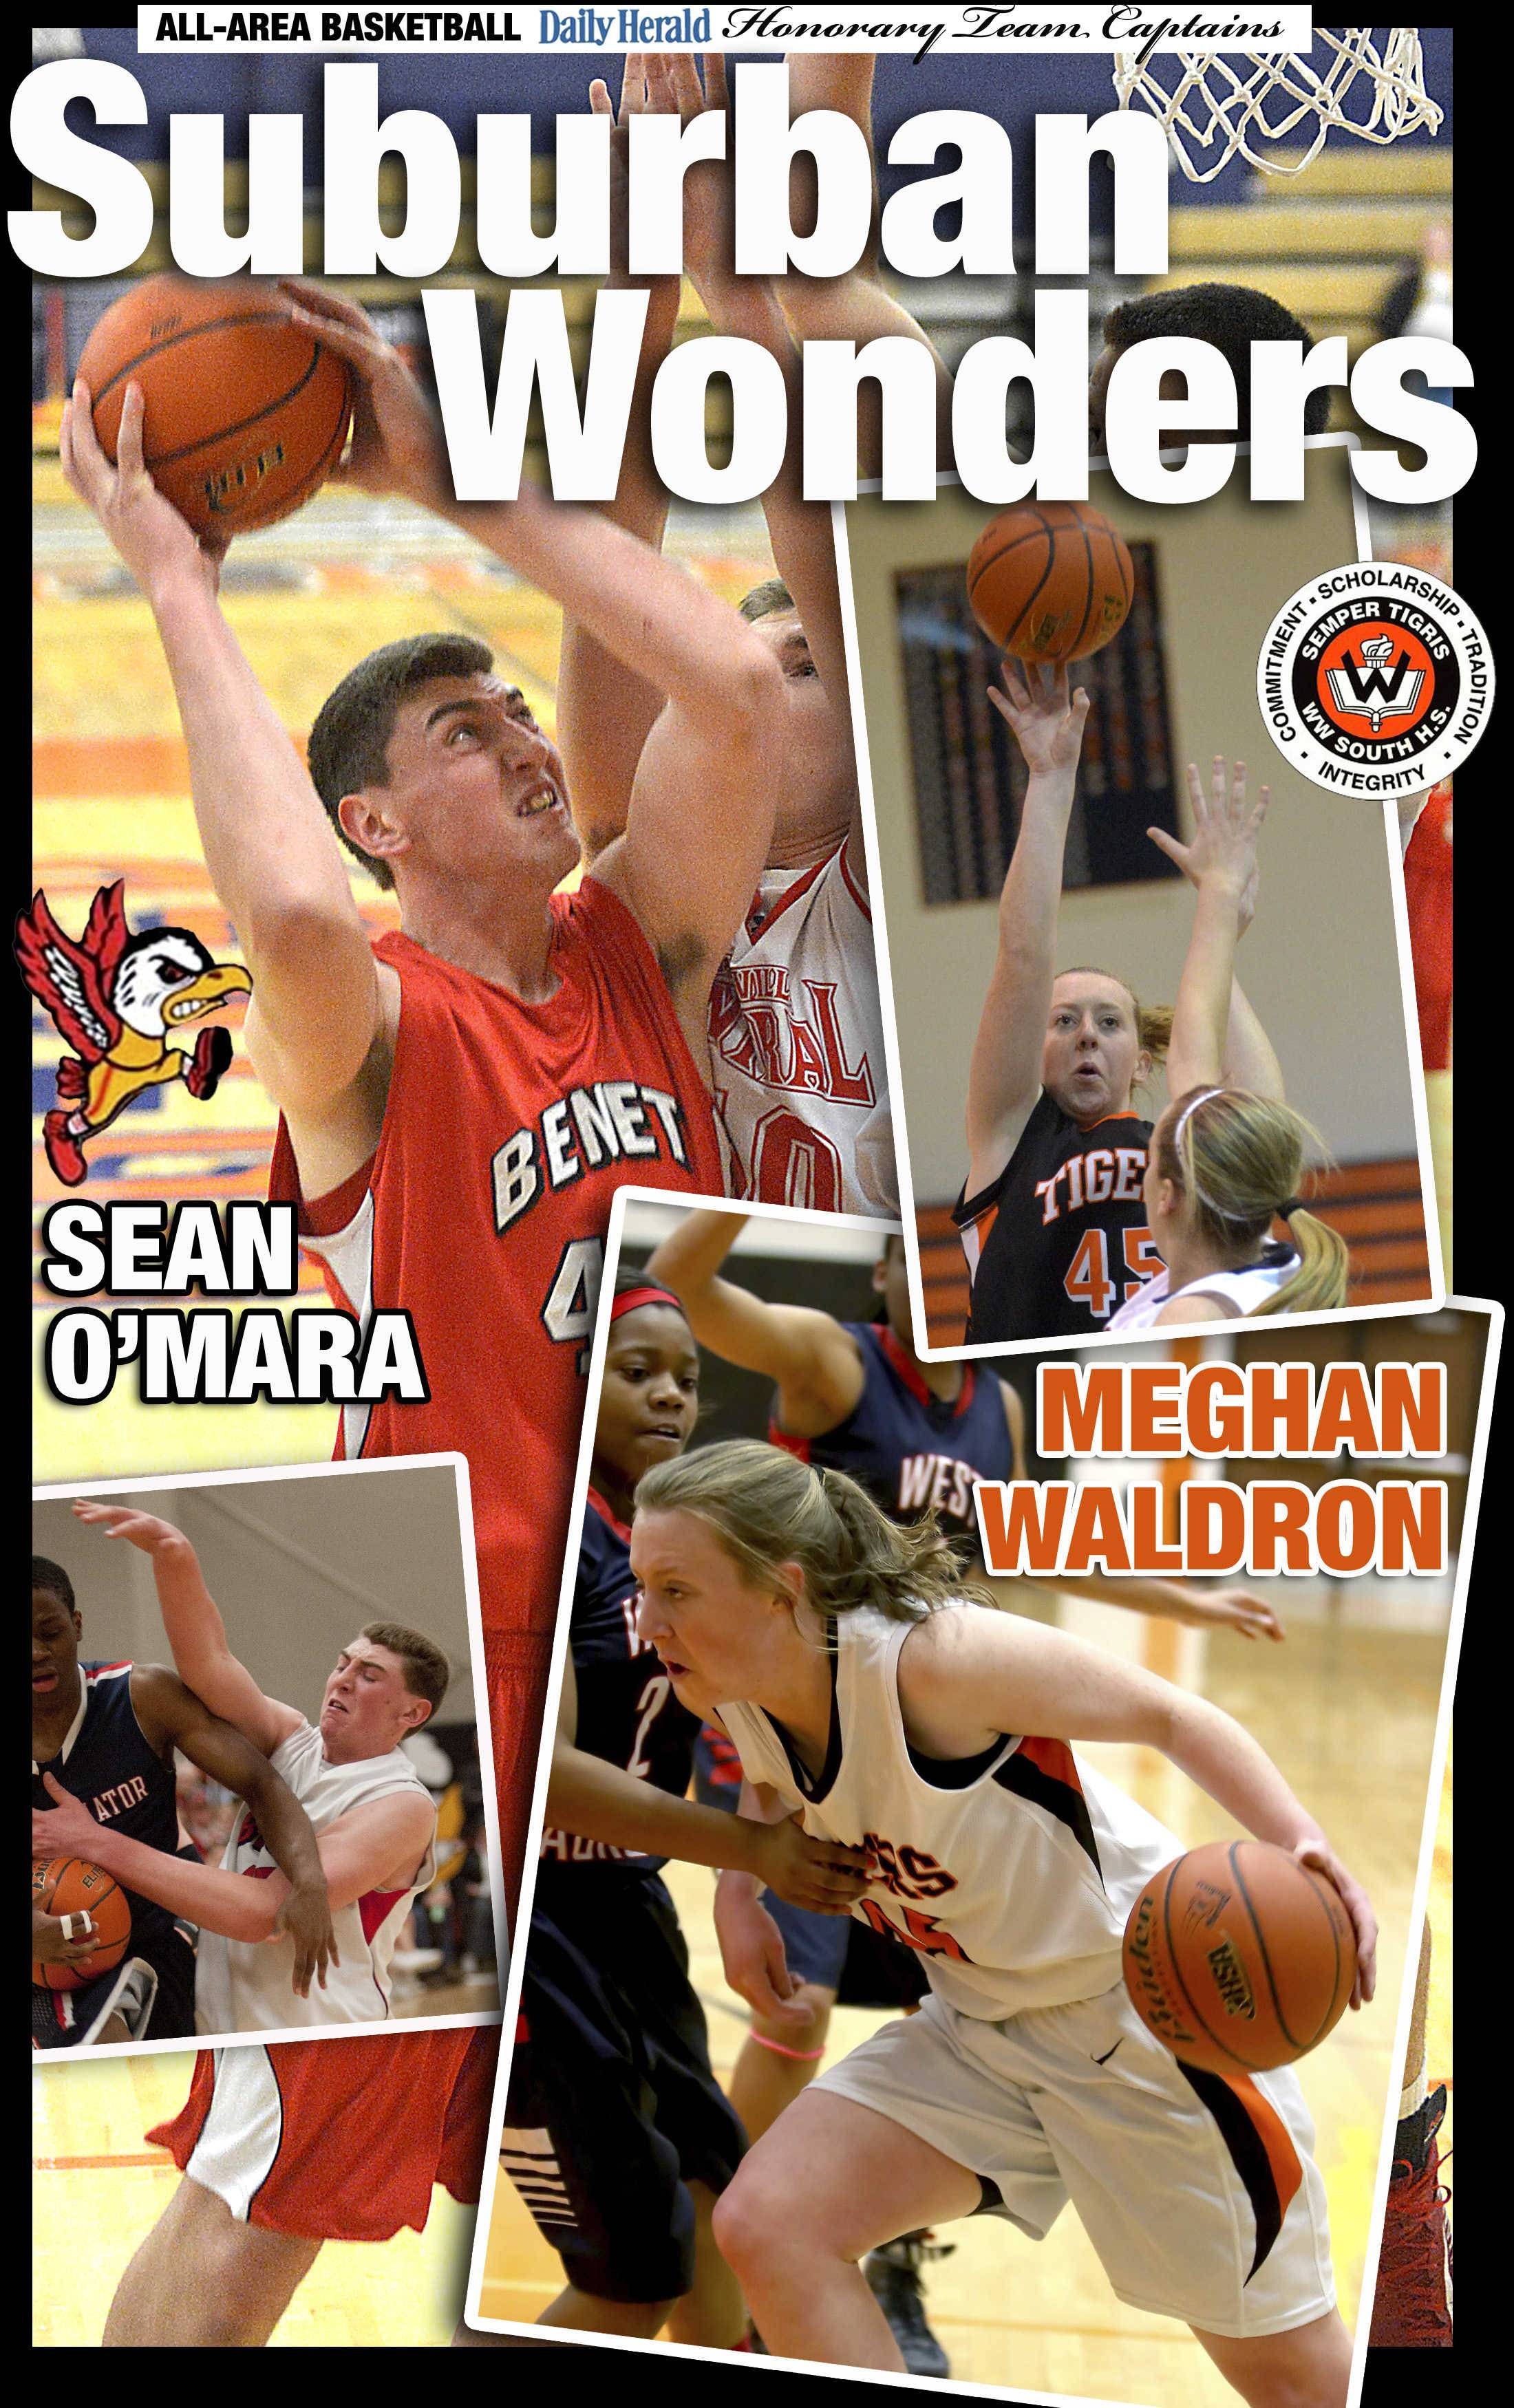 Sean O'Mara of Benet Academy  and Meghan Waldron of Wheaton Warrenville South are the Daily Herald All-Area honorary team captains for basketball in DuPage County in 2014.